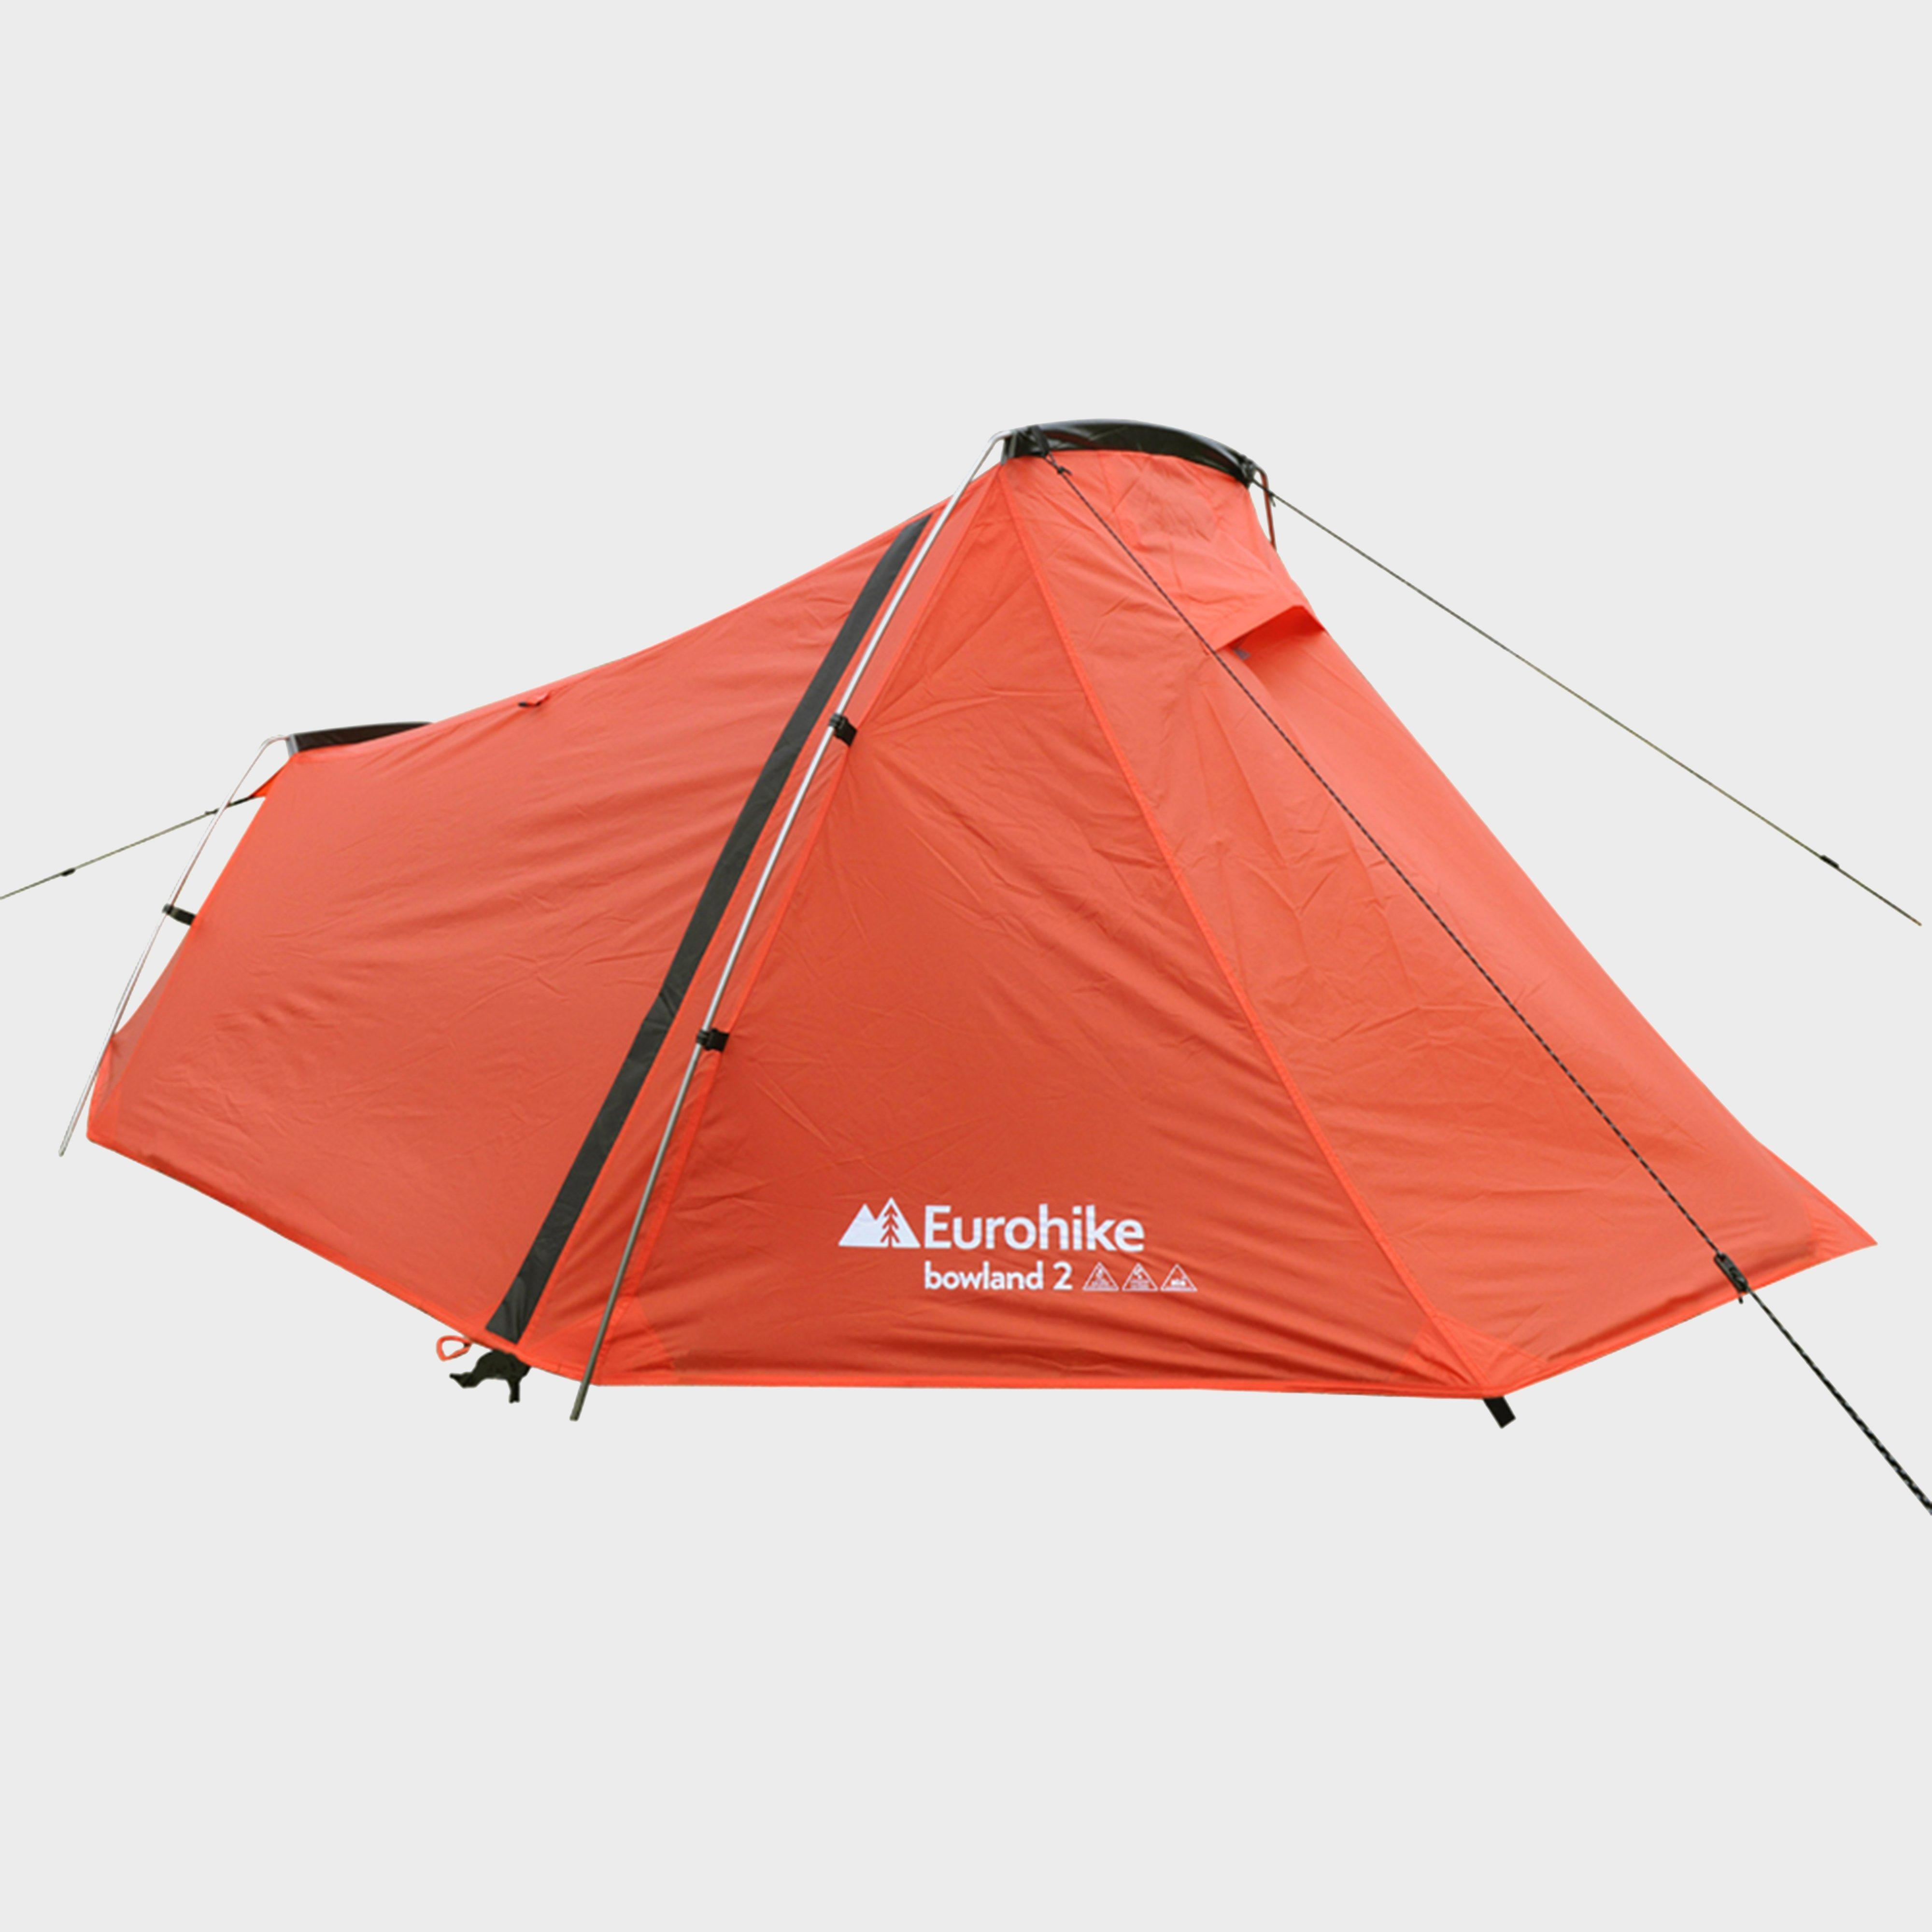 Ultimate Outdoors & Eurohike Tents | Ultimate Outdoors